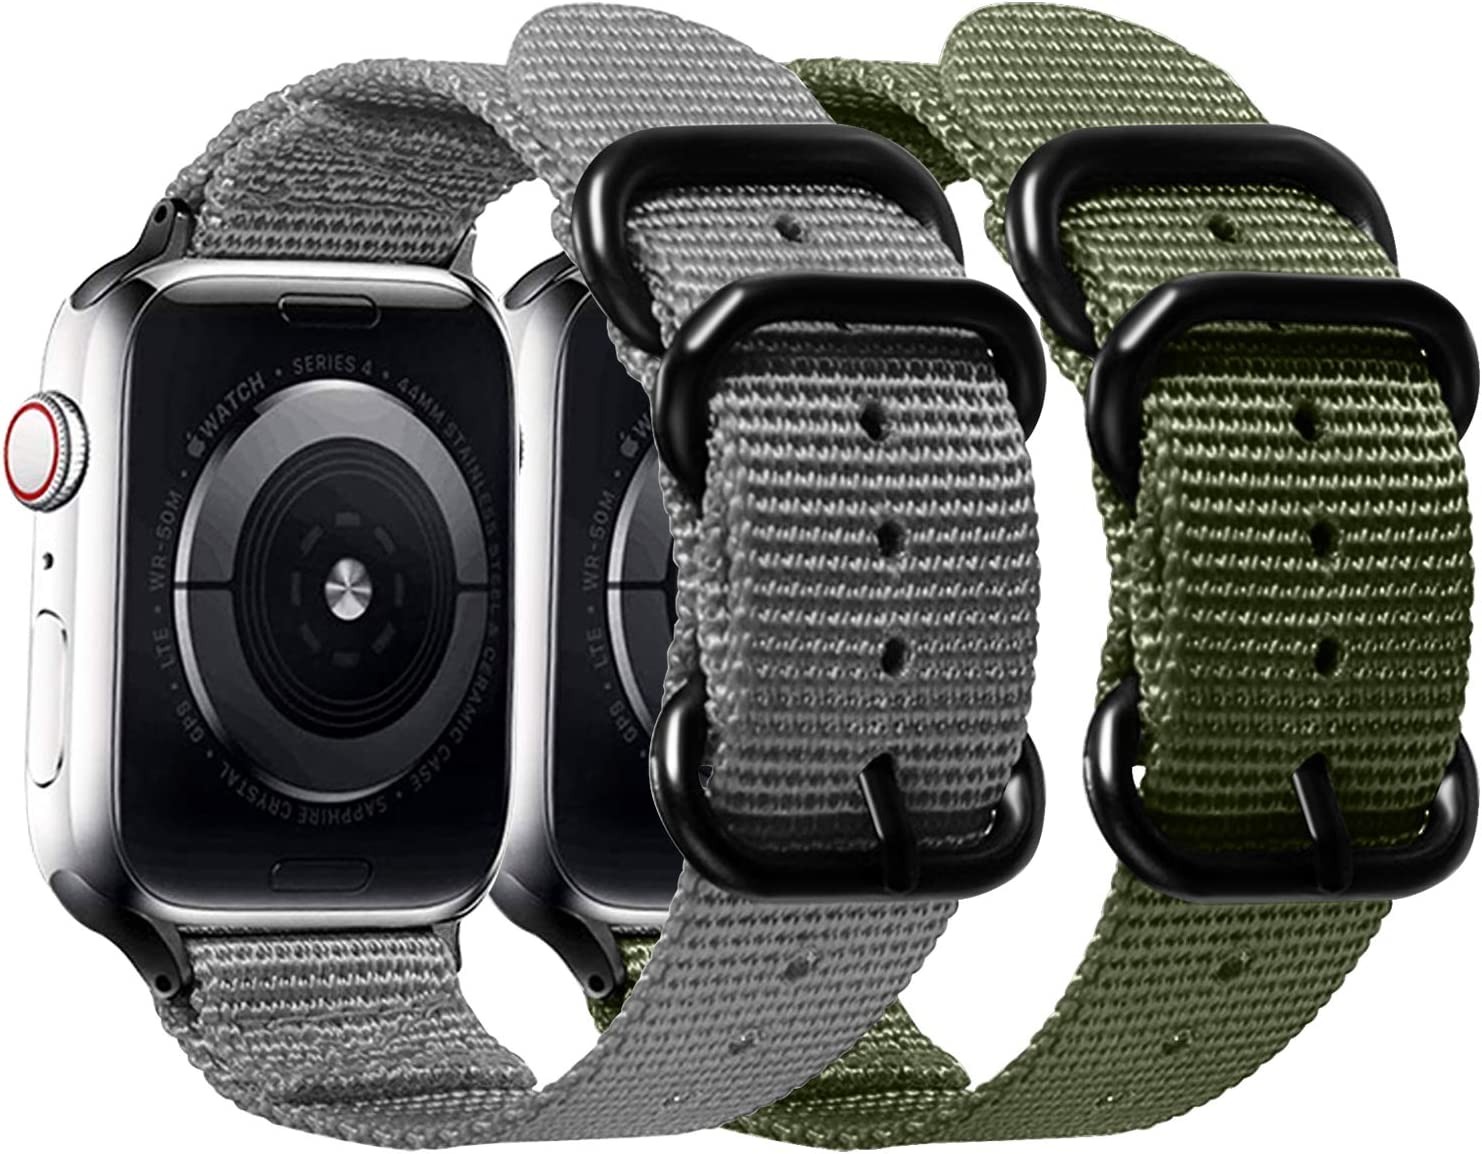 Misker Nylon Band Compatible with Apple Watch Band 44mm 42mm 40mm 38mm,Breathable Sport Strap with Metal Buckle Compatible with iwatch Series 5/4/3/2/1 (2-Packs Army Green/Gray, 42mm/44mm)